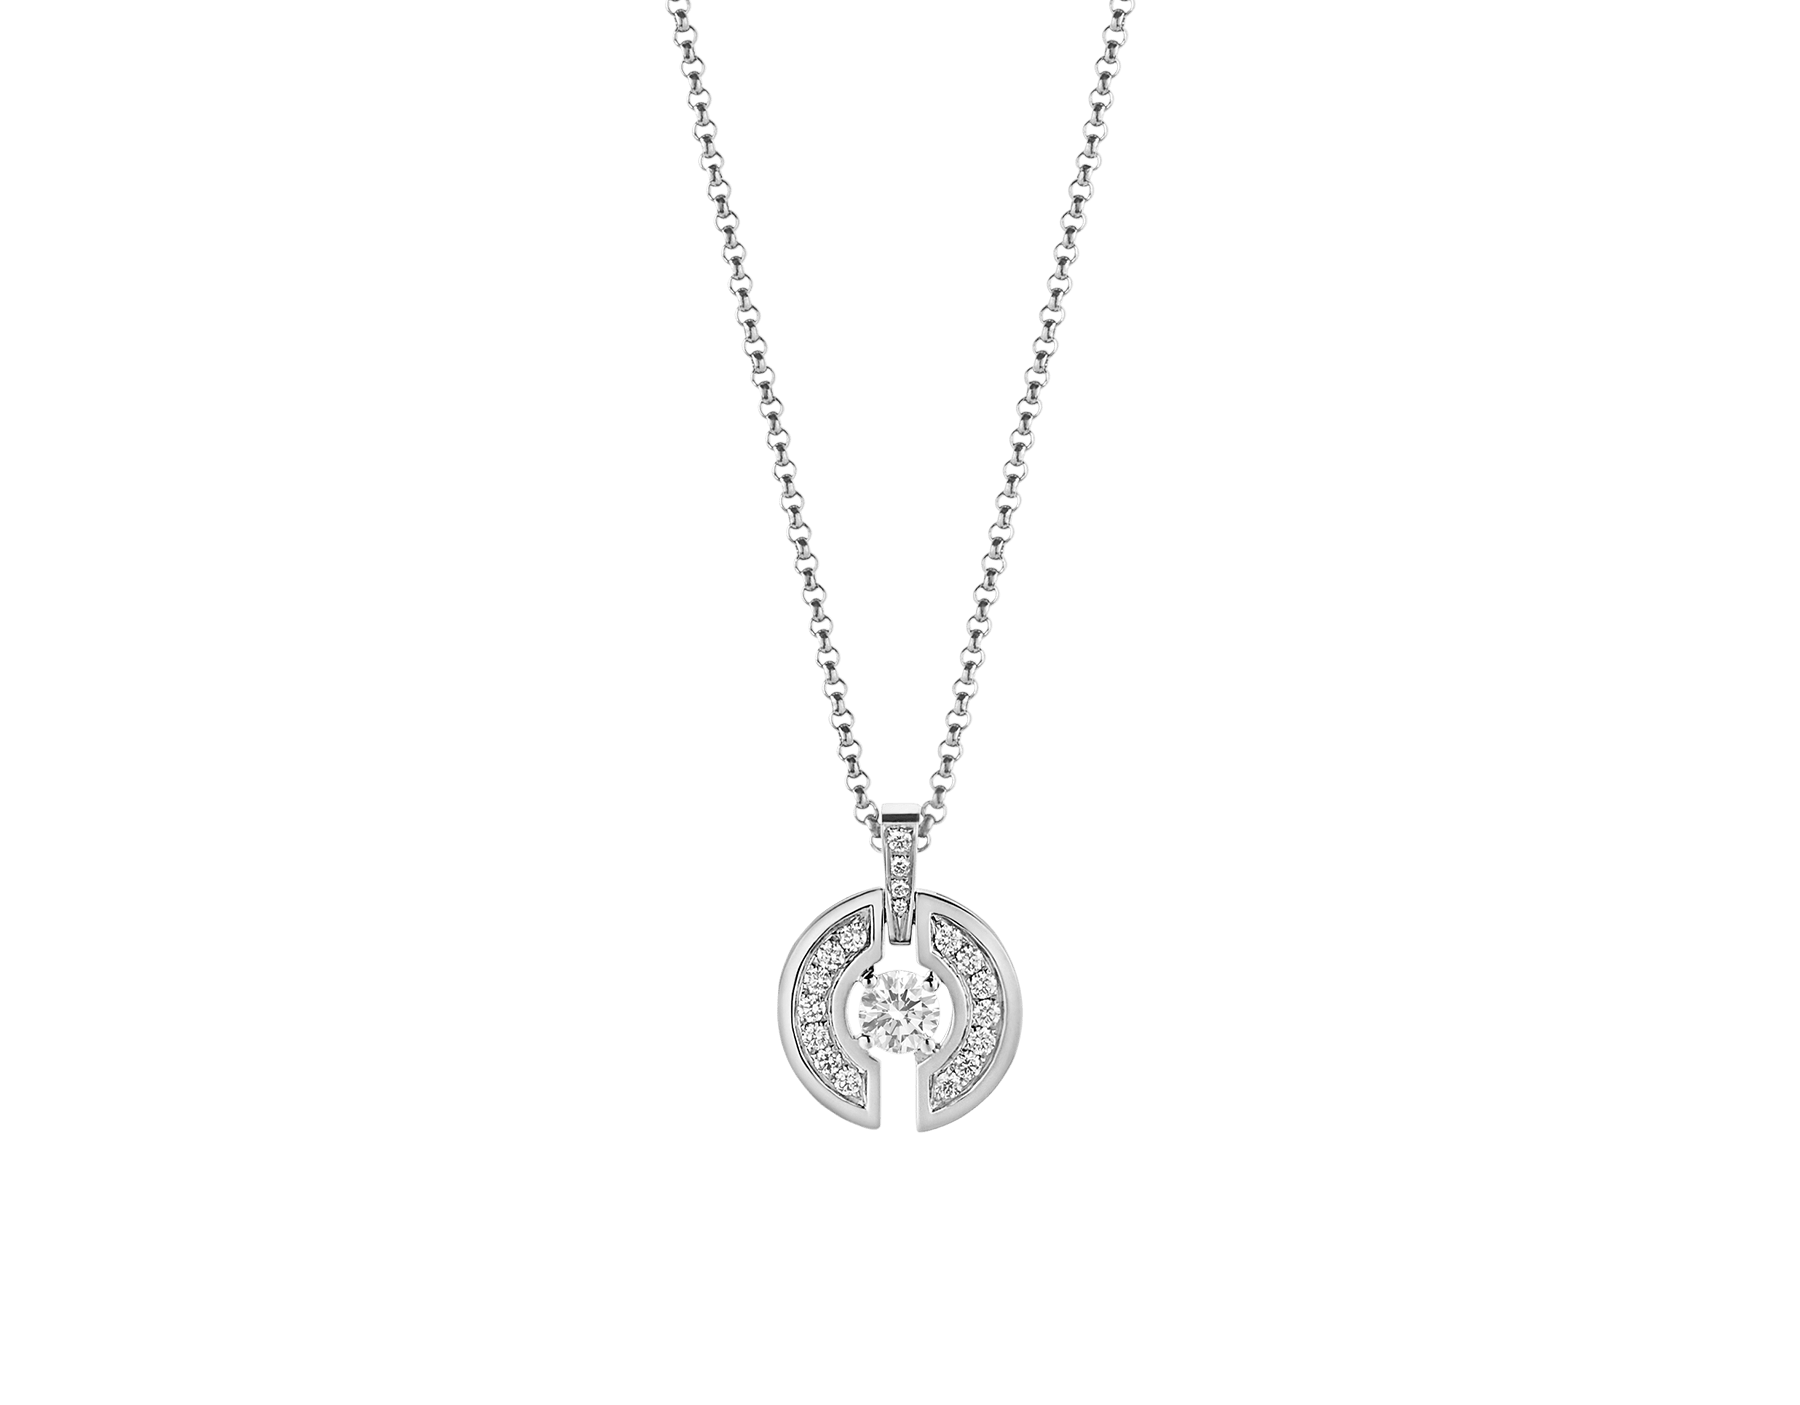 Parentesi necklace with 18 kt white gold chain and pendant, set with a central diamond. 354311 image 2